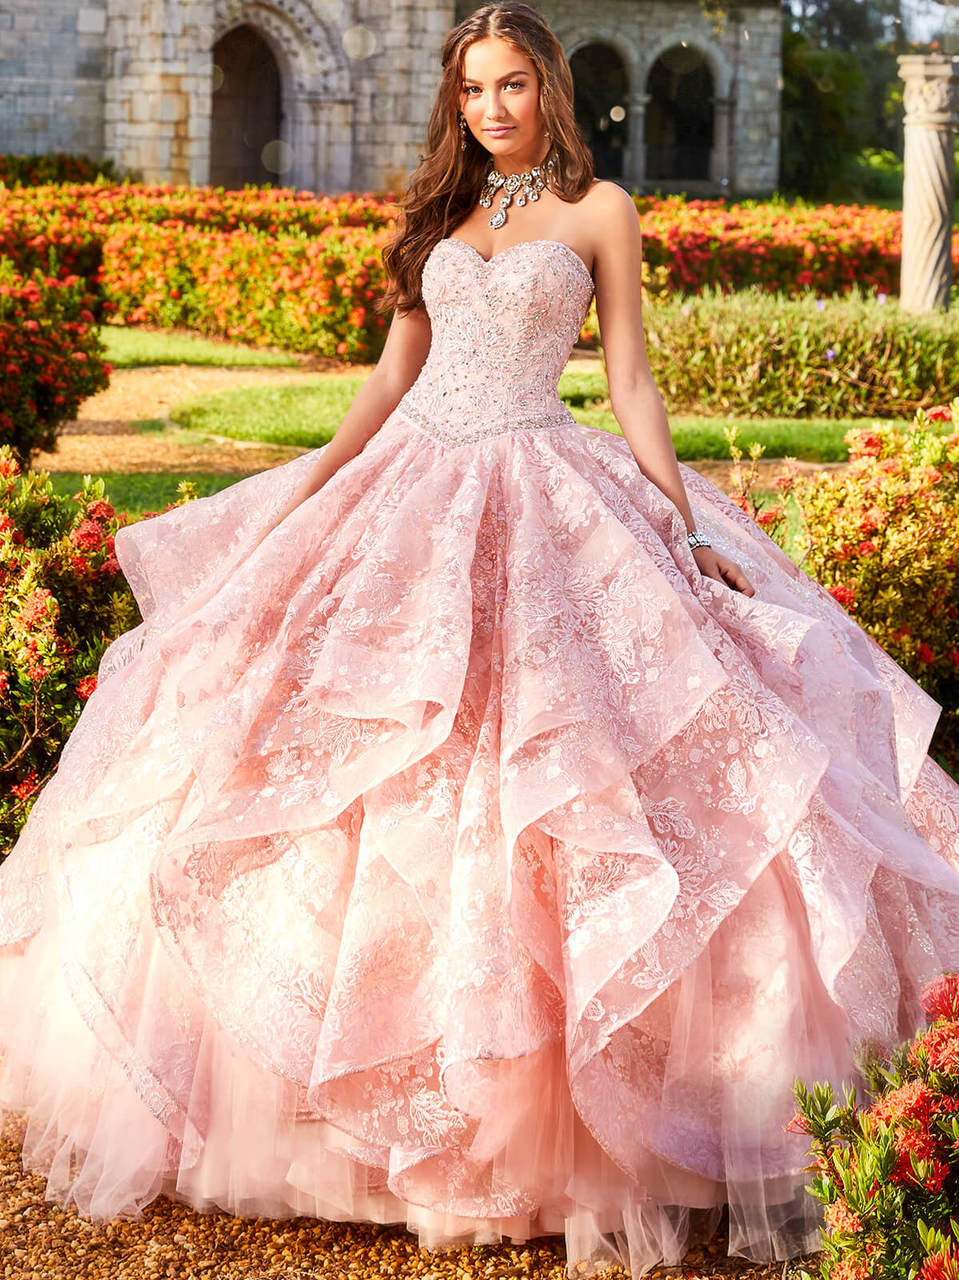 a8aa6bfd6 Princesa Quinceanera. $1,198.00. fully lace embroider ball princesa by ariana  vara pr11933. Free shipping